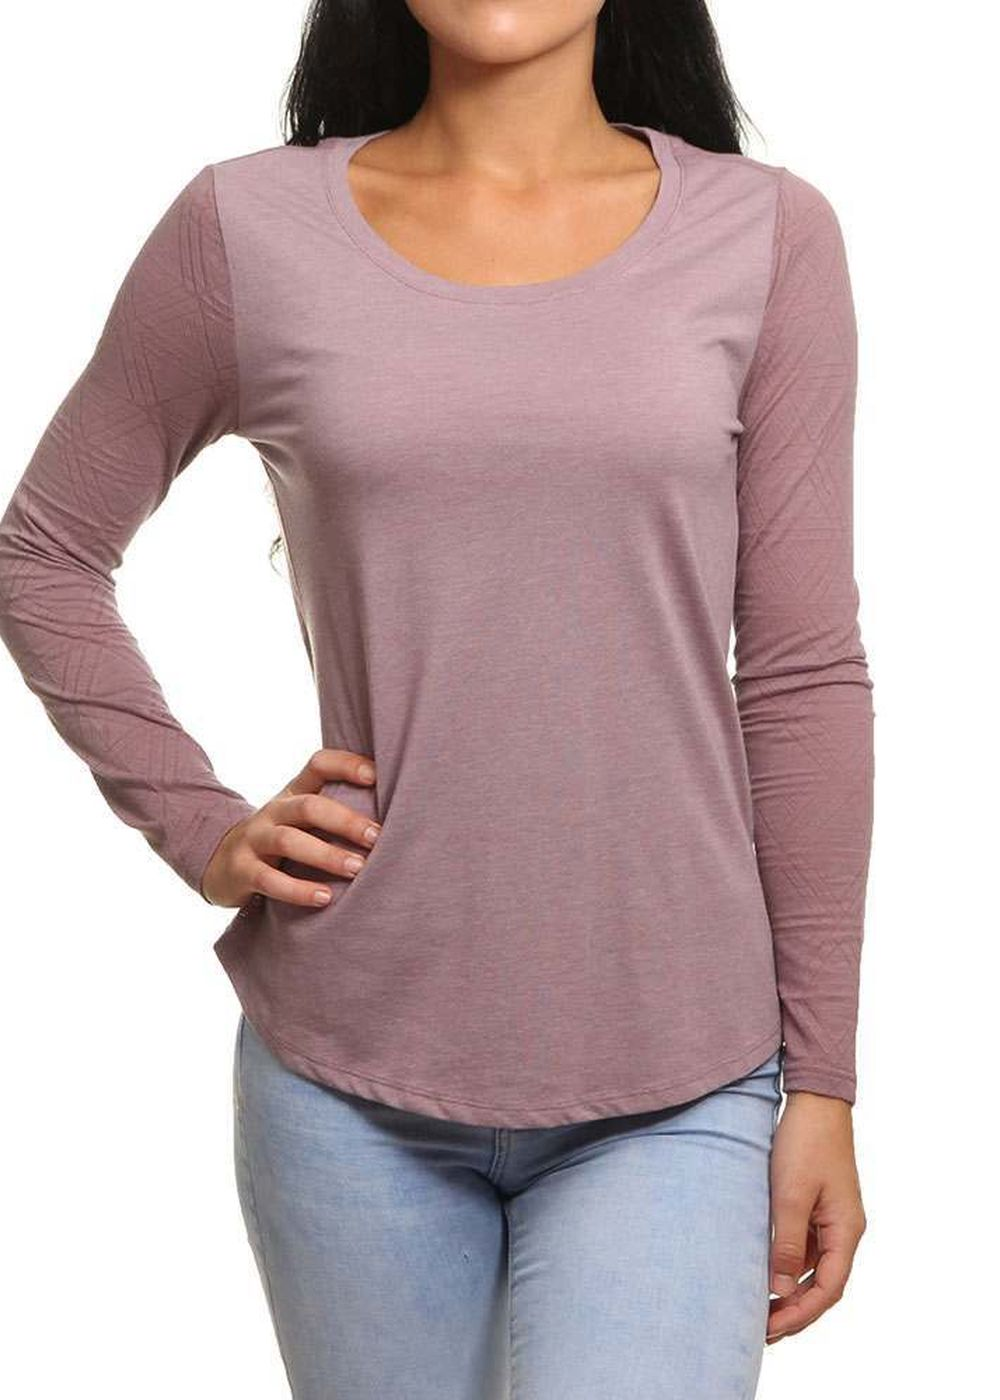 animal-tribalatwo-long-sleeve-top-dusty-mauve